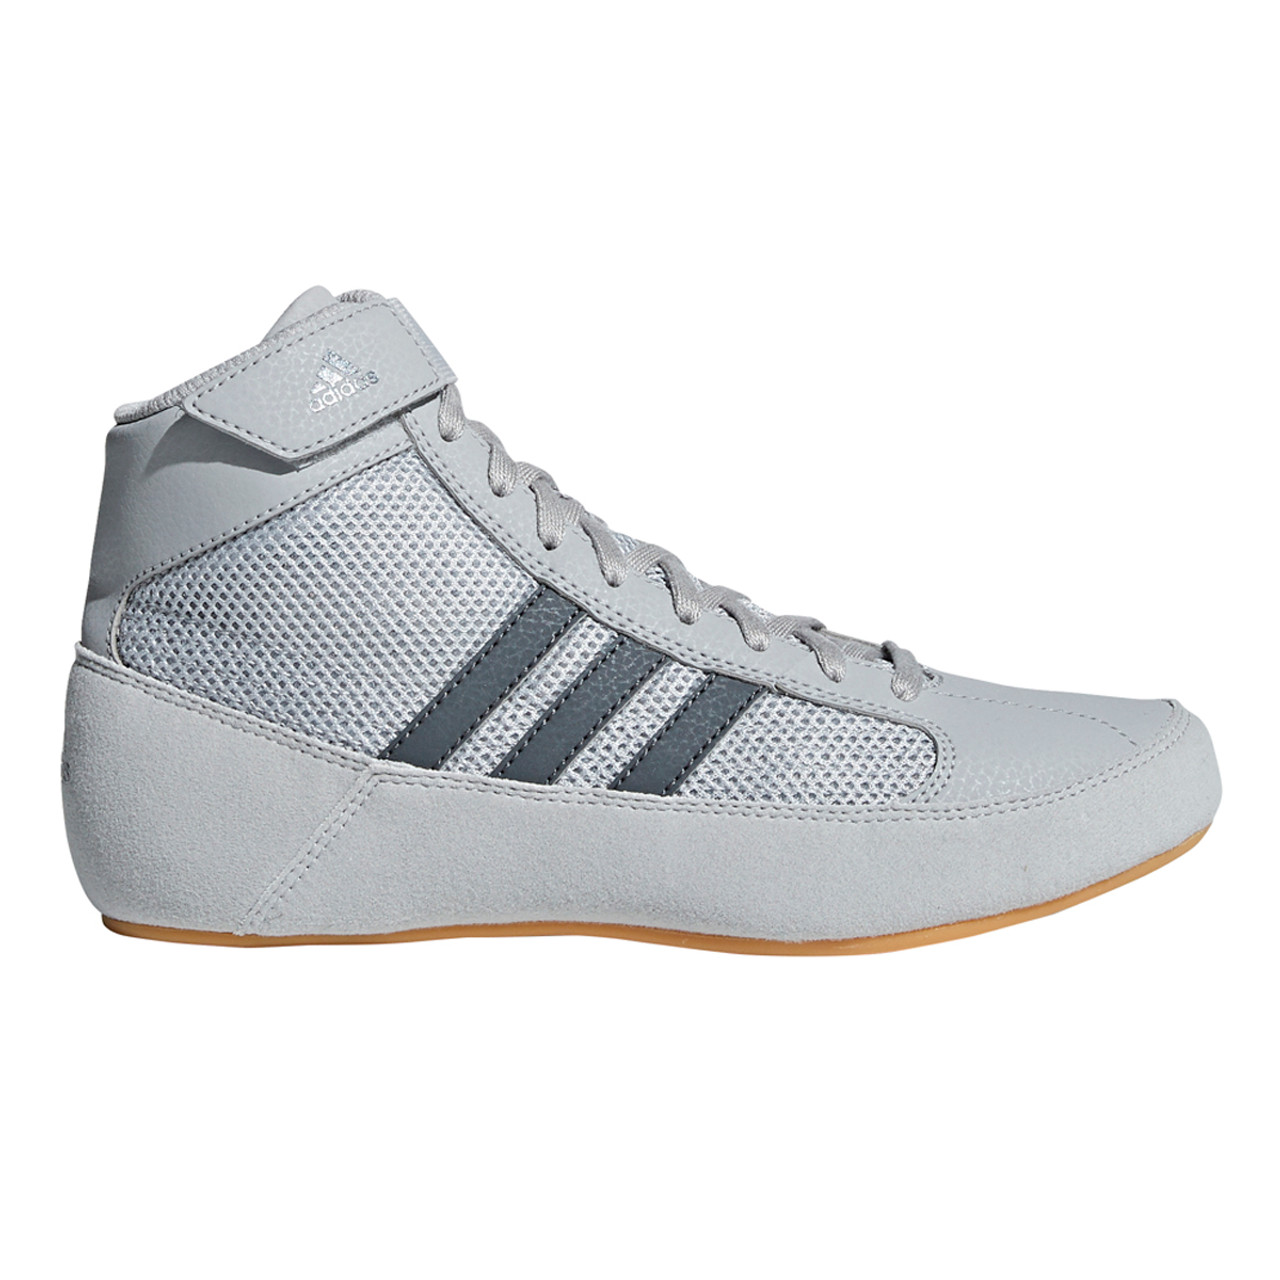 new arrival 77a8a 9f573 Adidas HVC 2 Youth Wrestling Shoes AC7503 - Gray